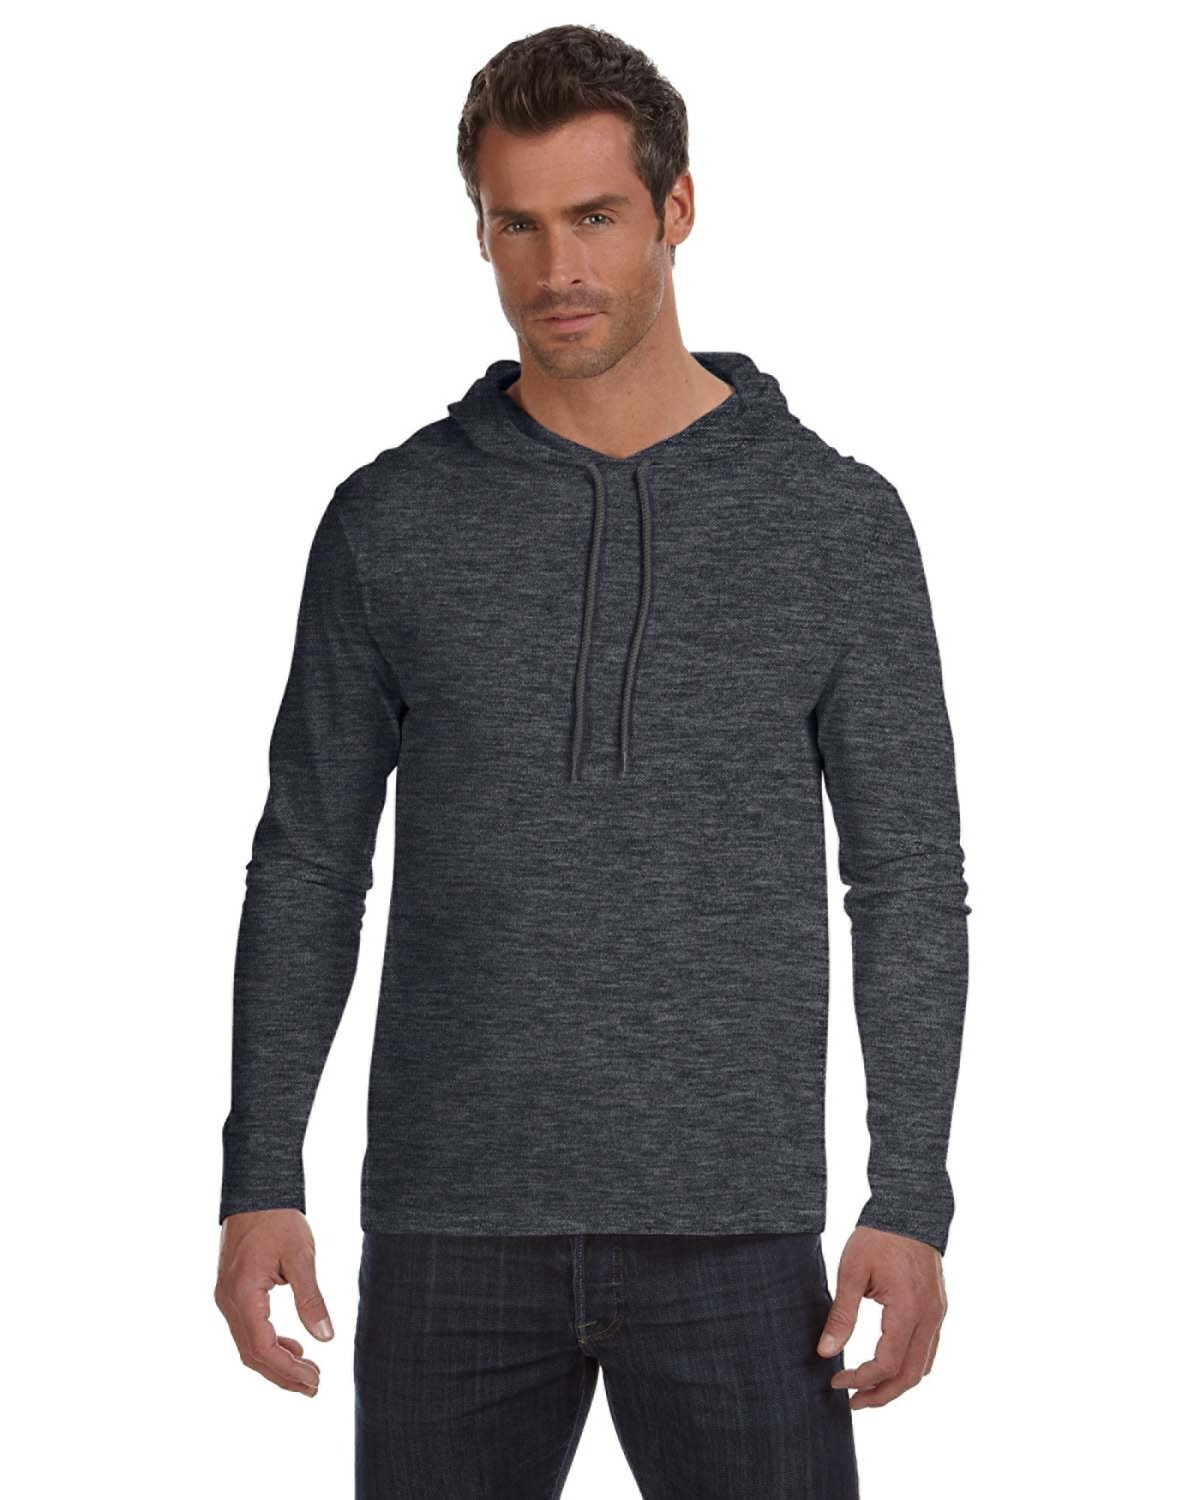 Anvil Adult Lightweight Long-Sleeve Hooded T-Shirt HTH DK GY/ DK GY